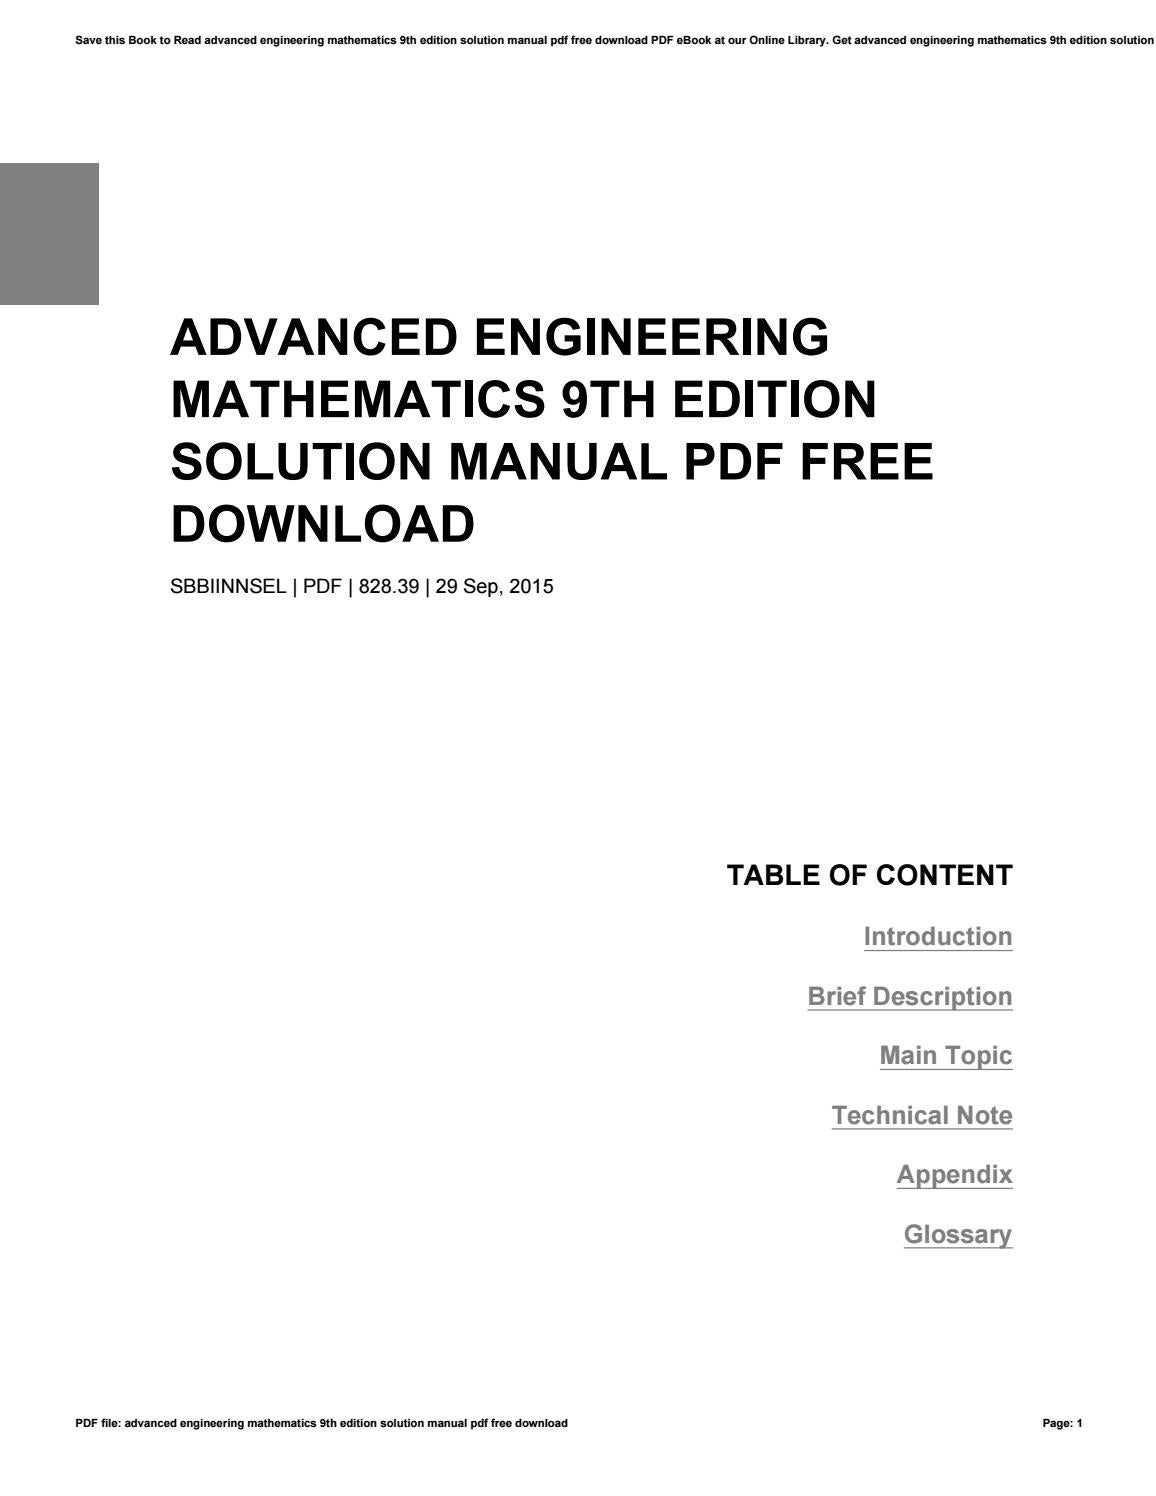 Advanced engineering mathematics 9th edition solution manual pdf free  download by FrankLinehan3119 - issuu